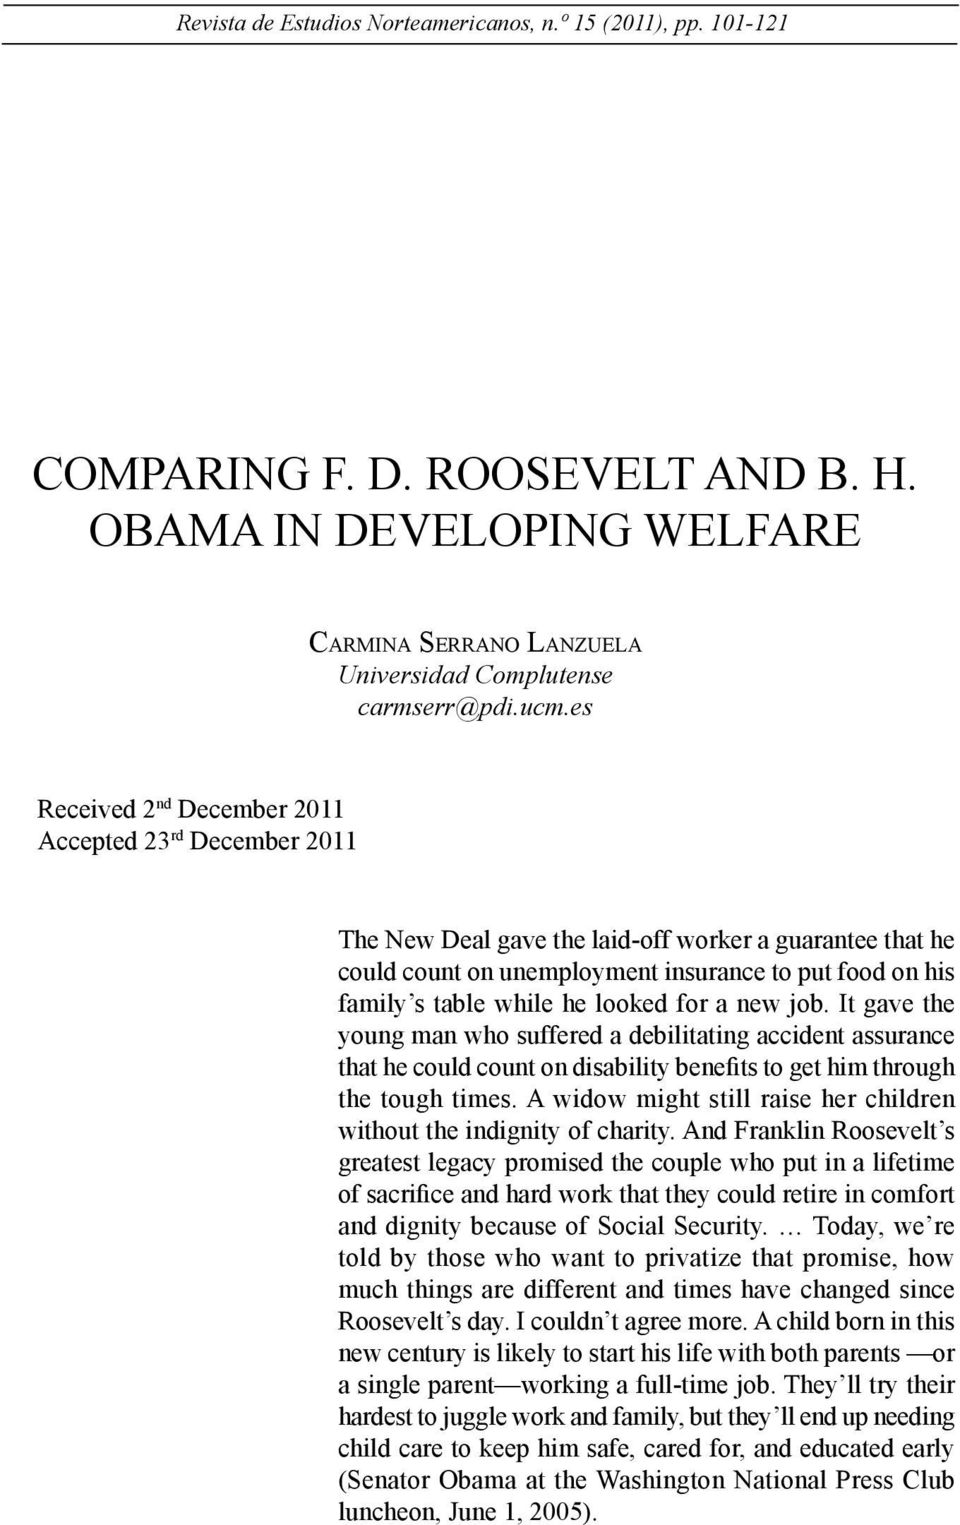 looked for a new job. It gave the young man who suffered a debilitating accident assurance that he could count on disability benefits to get him through the tough times.